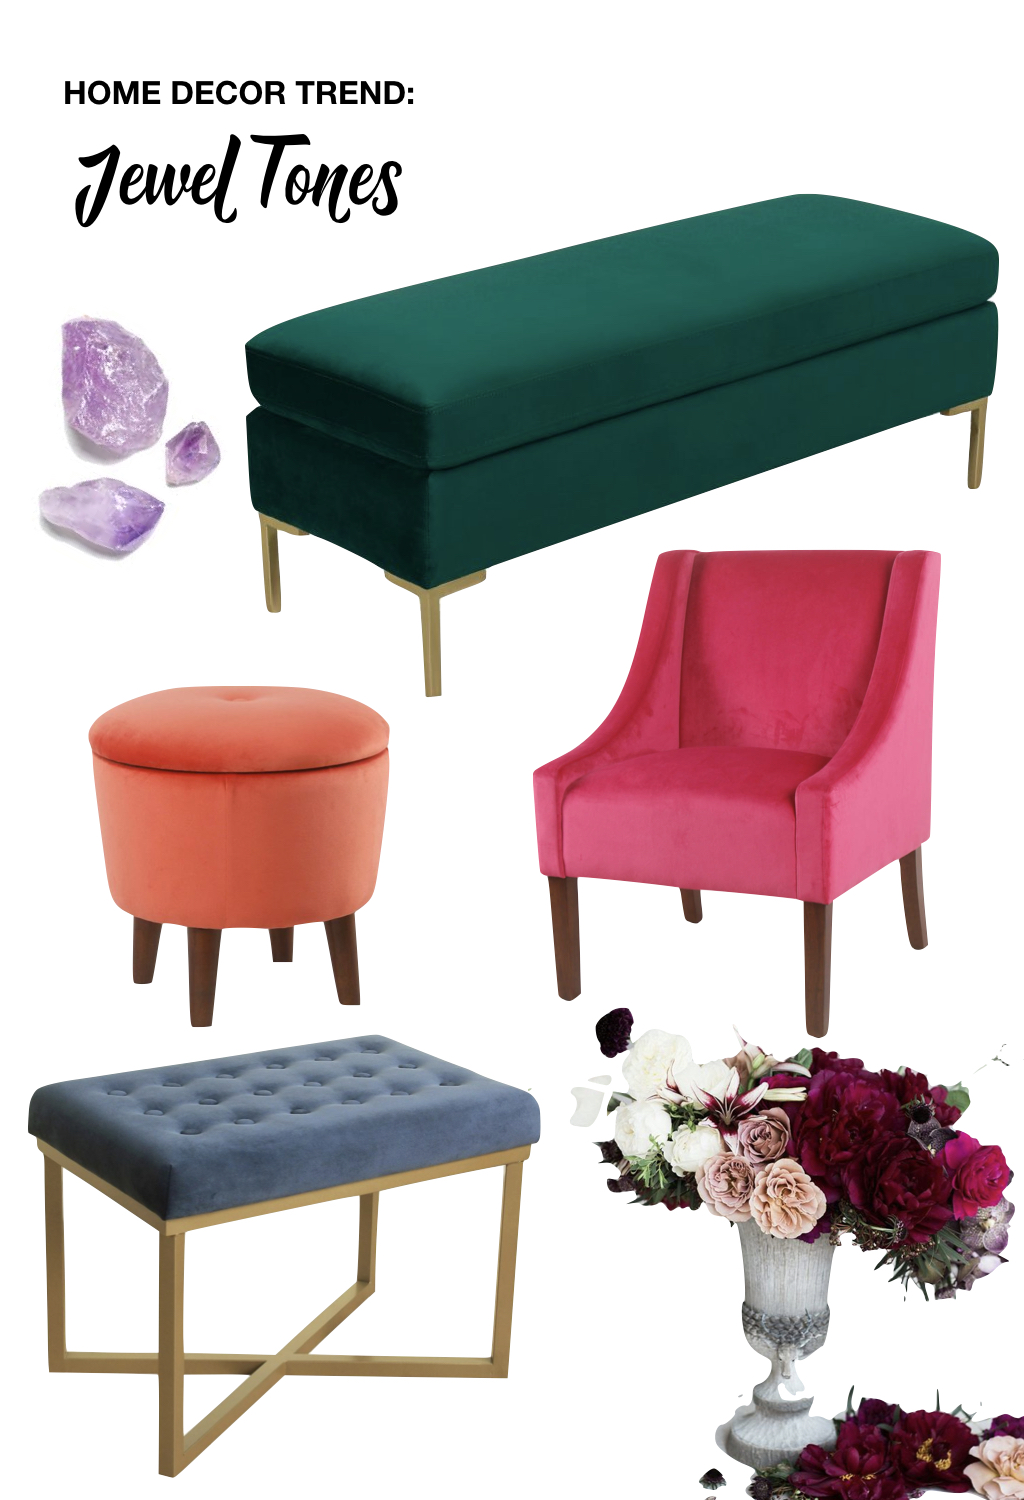 fall home decor trends | jewel tones | green velvet bench brushed gold feet